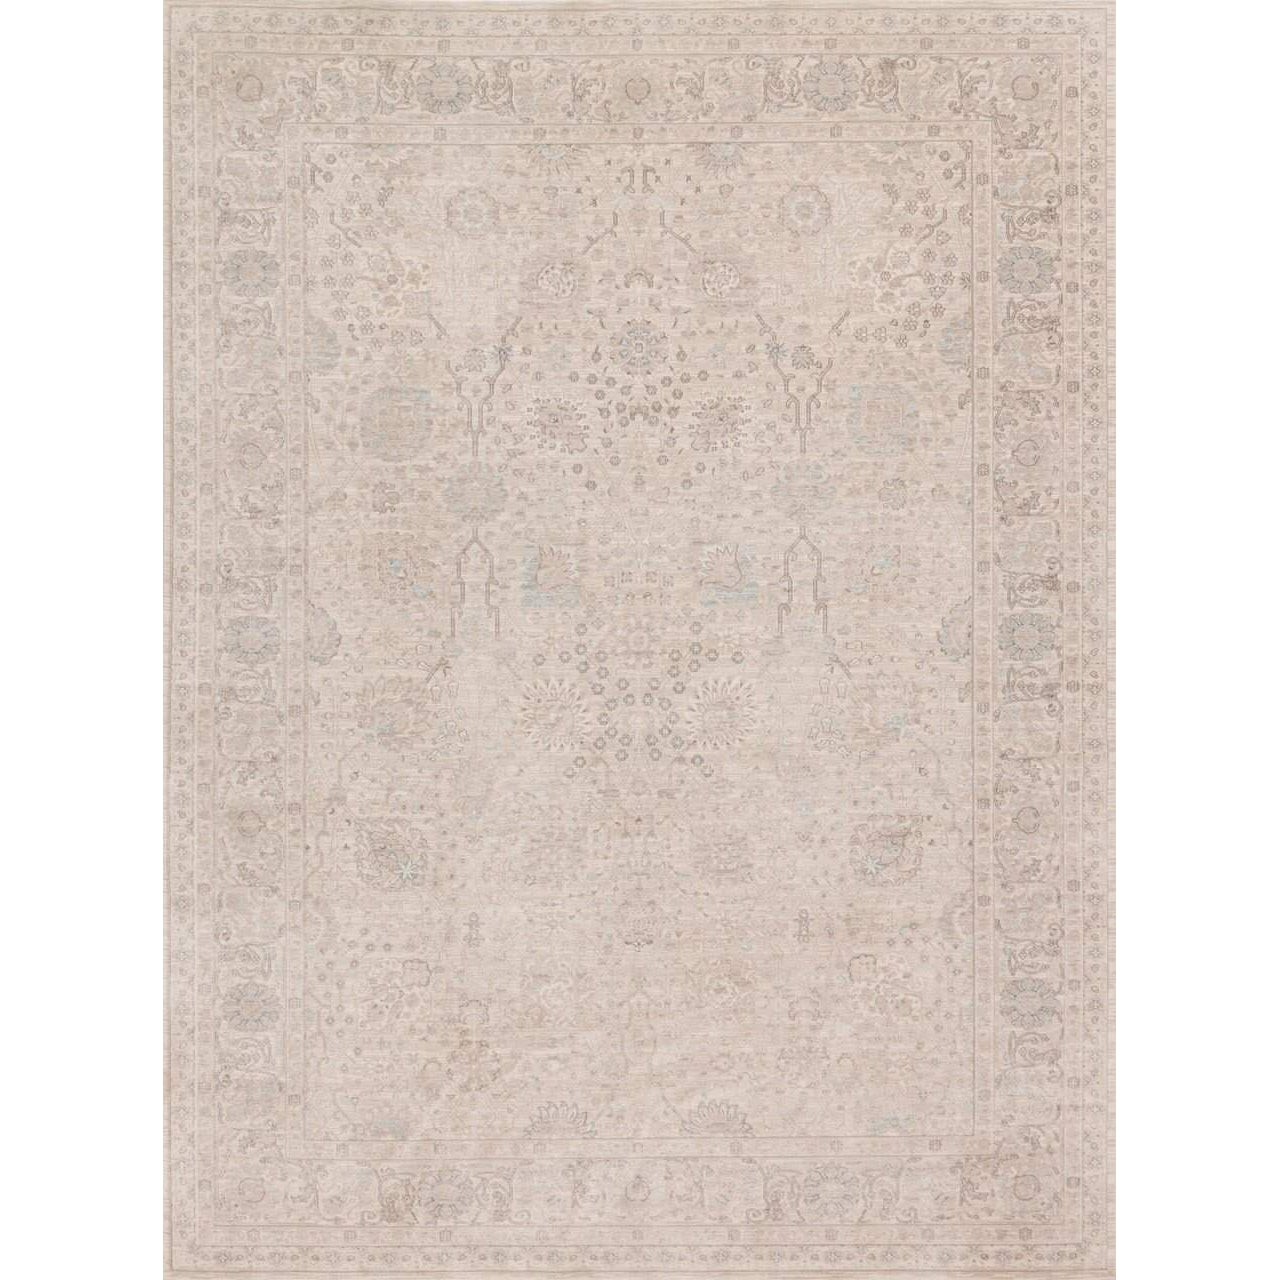 Joanna Gaines Magnolia Home Rug - Ella Rose Collection -  Natural / Natural